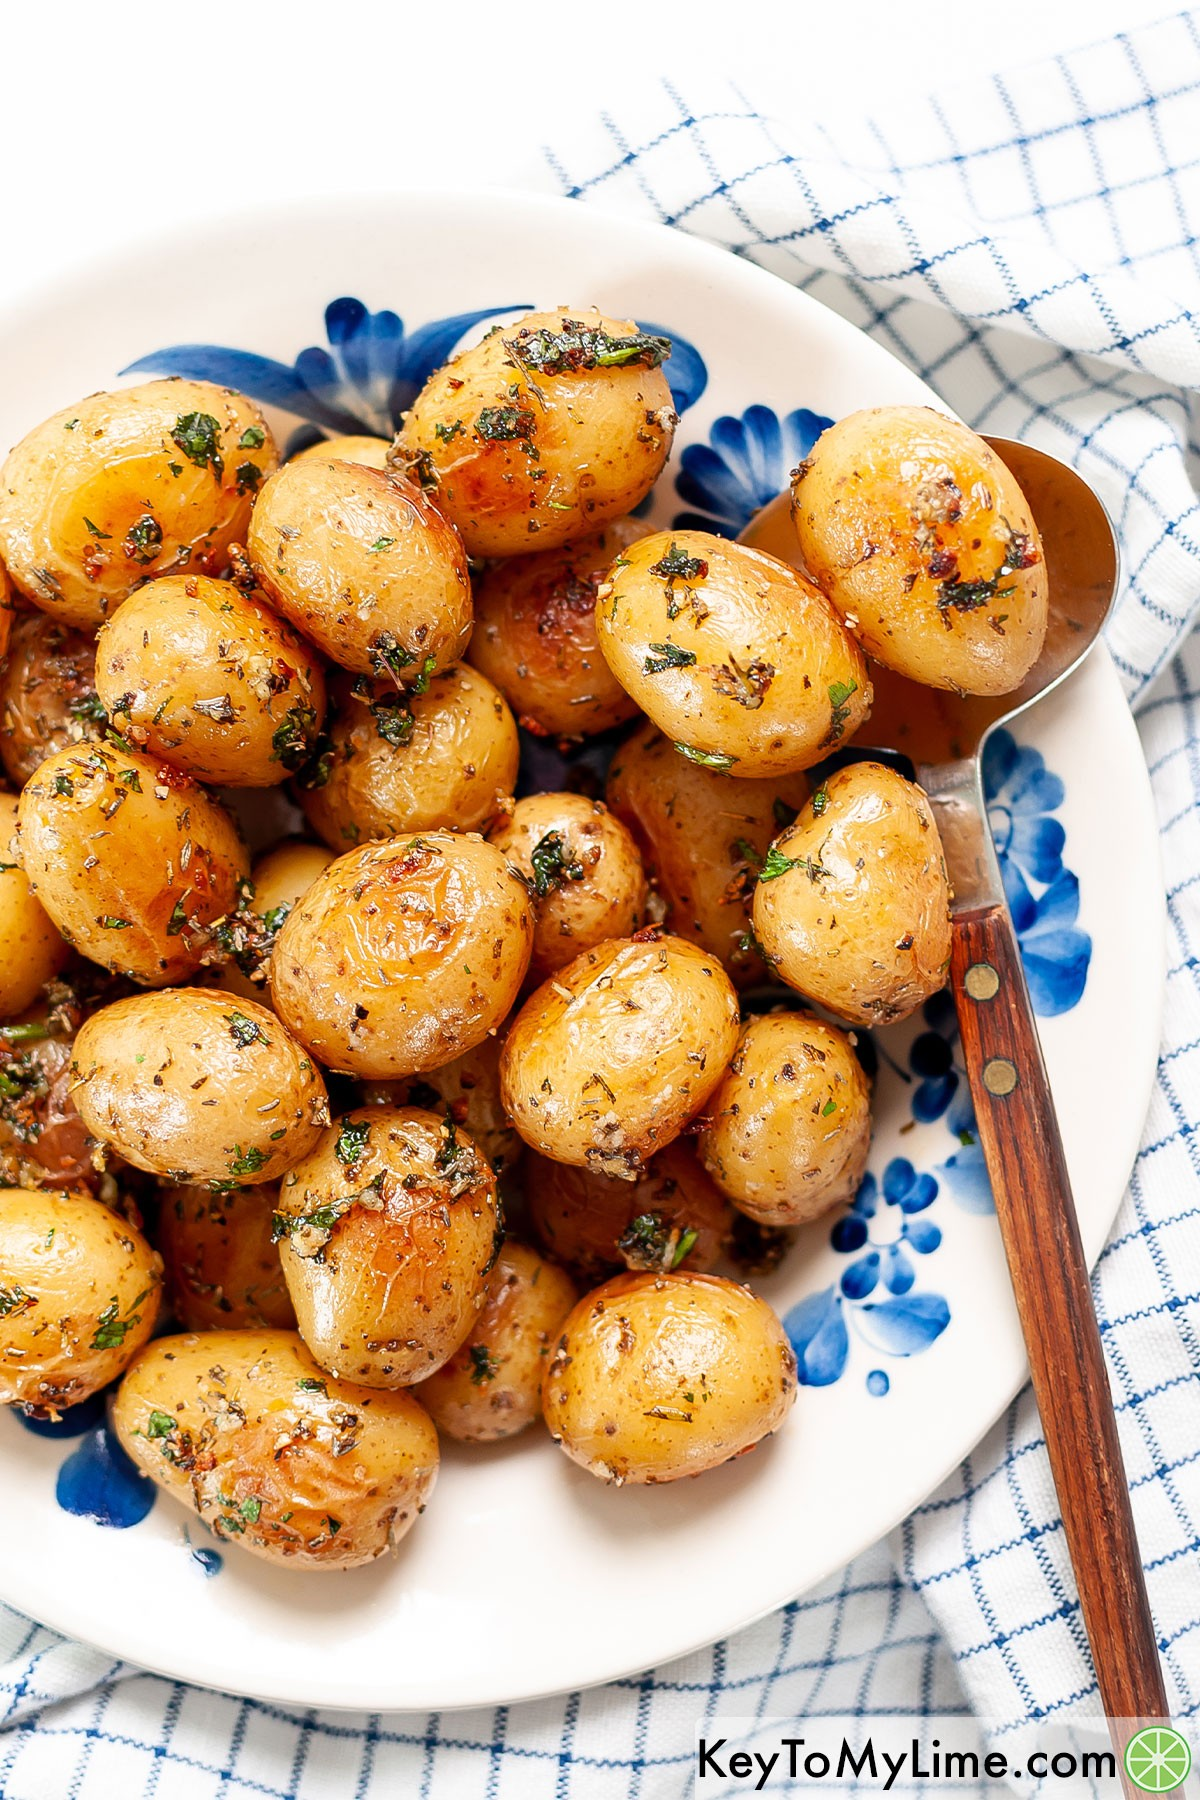 A bowl of roasted baby potatoes with a serving spoon underneath a potato.